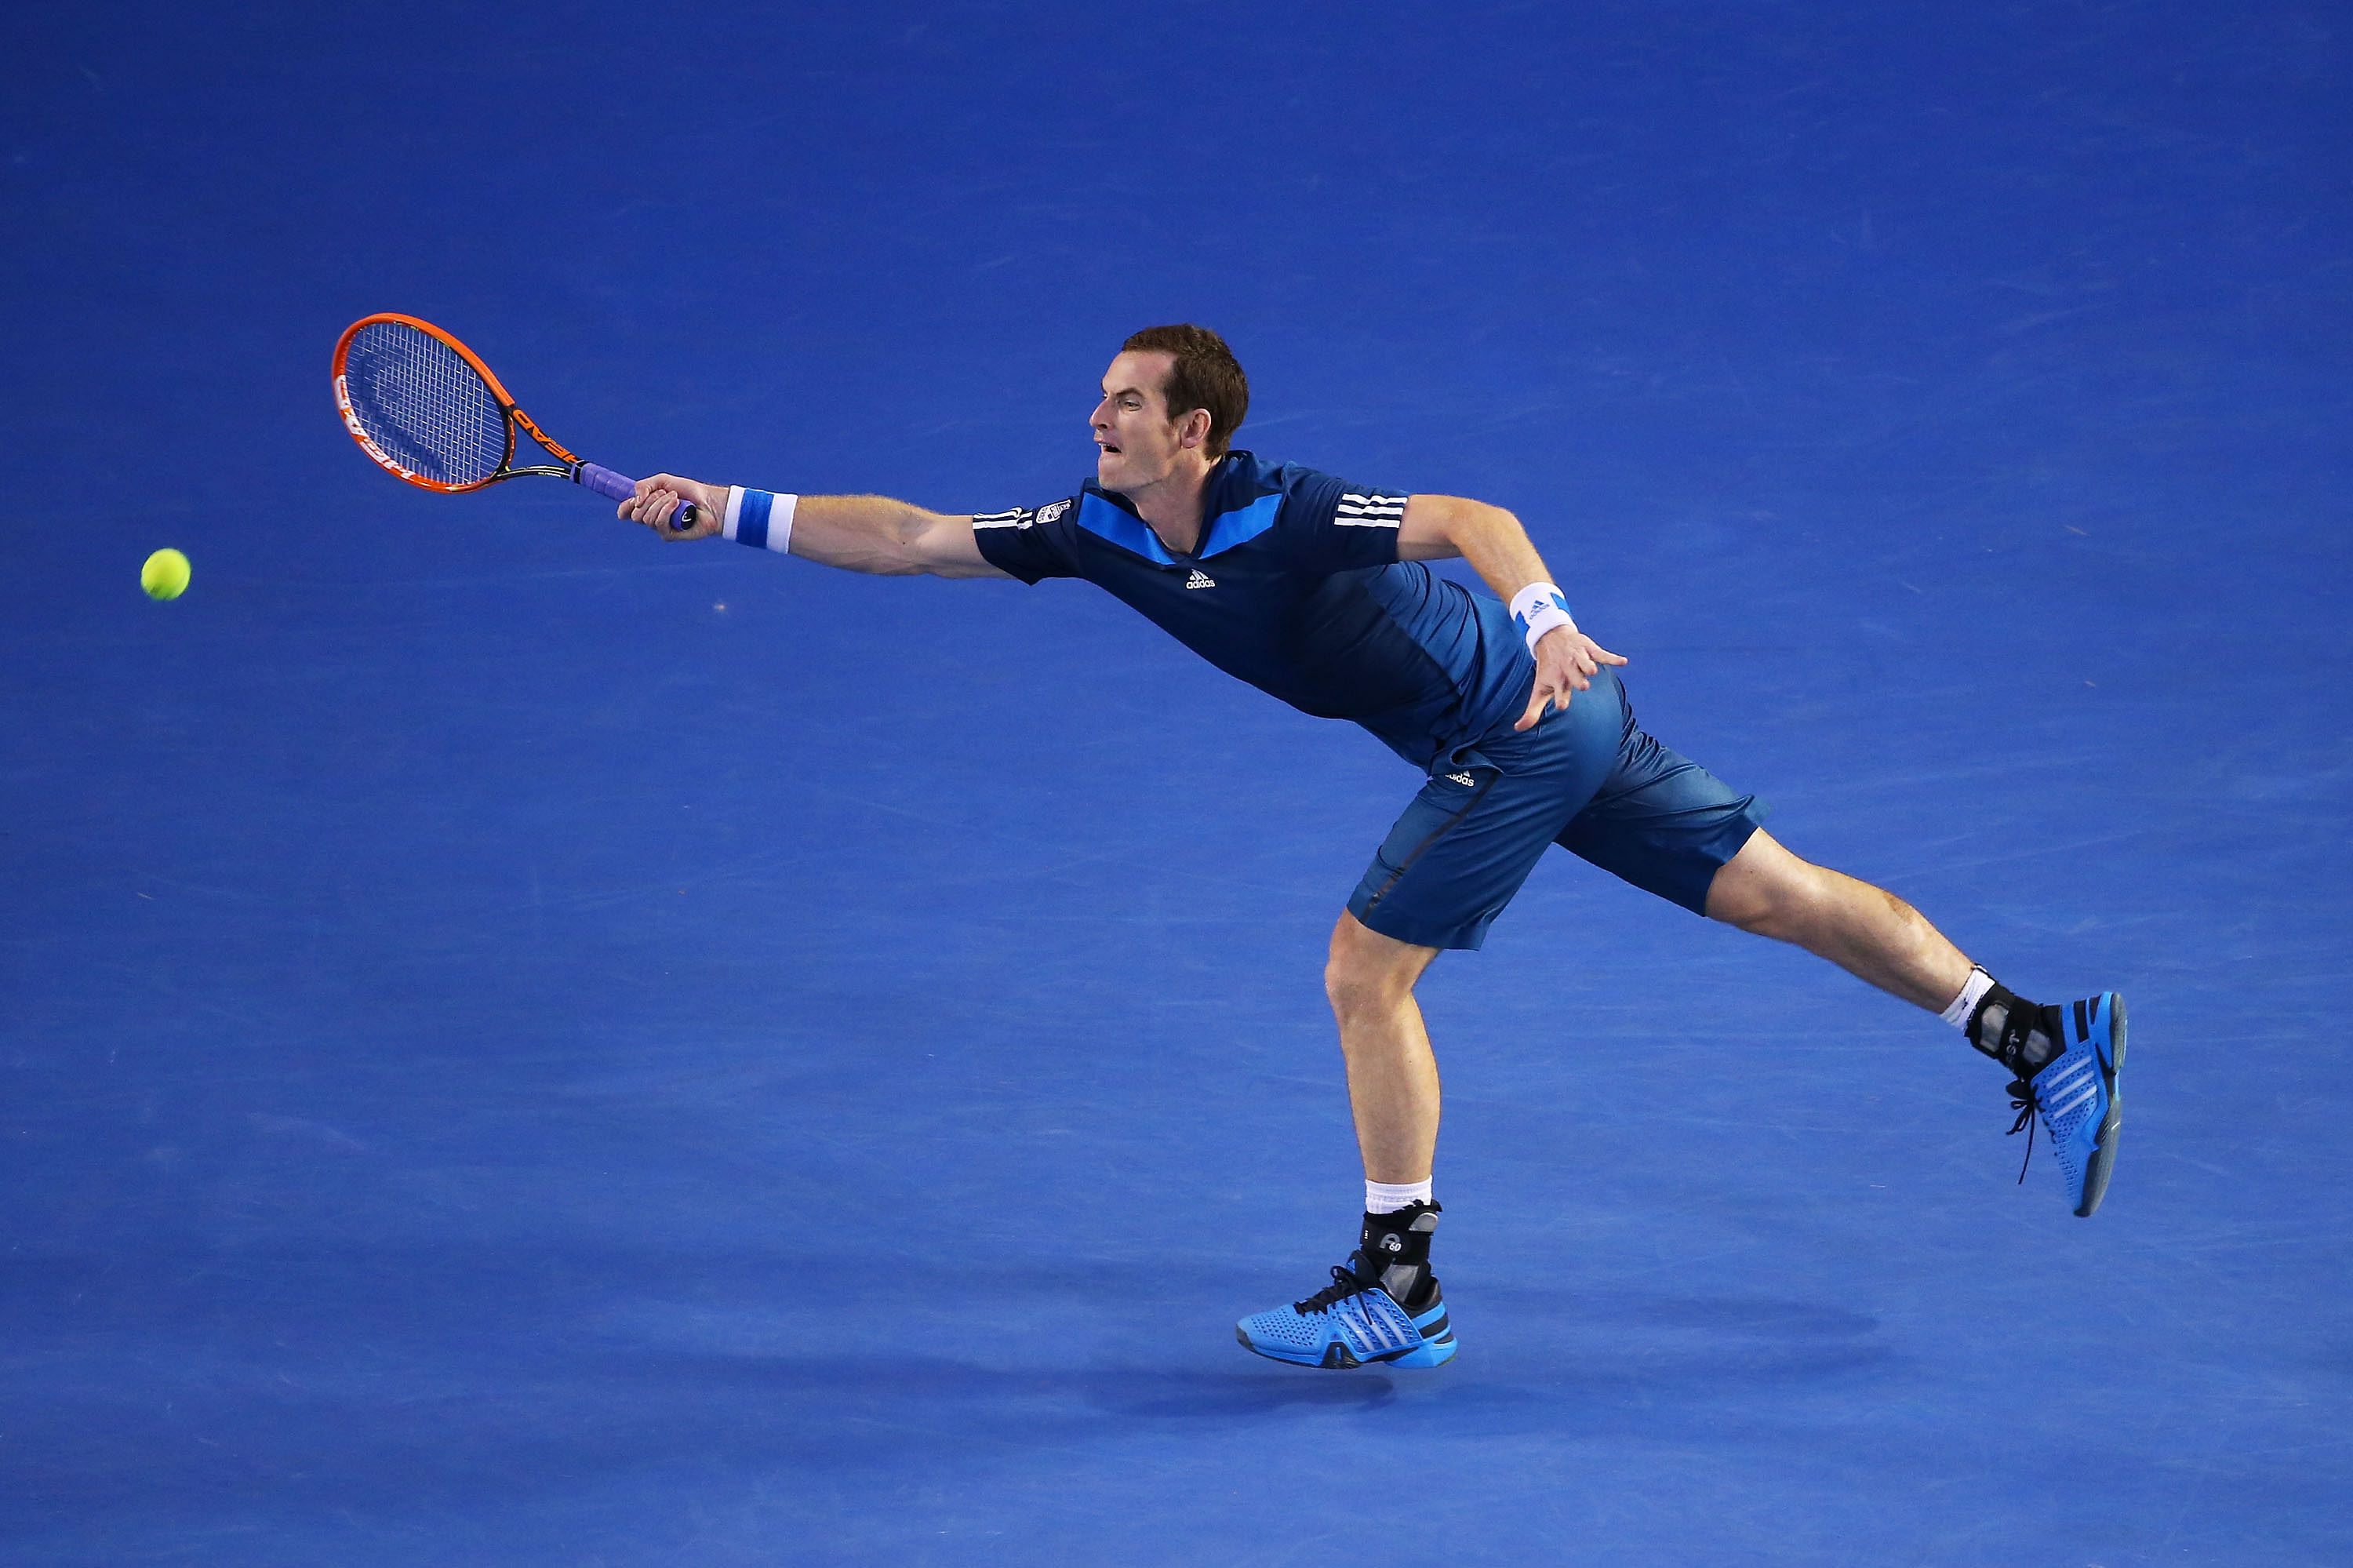 Andy Murray looking forward to helping take tennis somewhere new